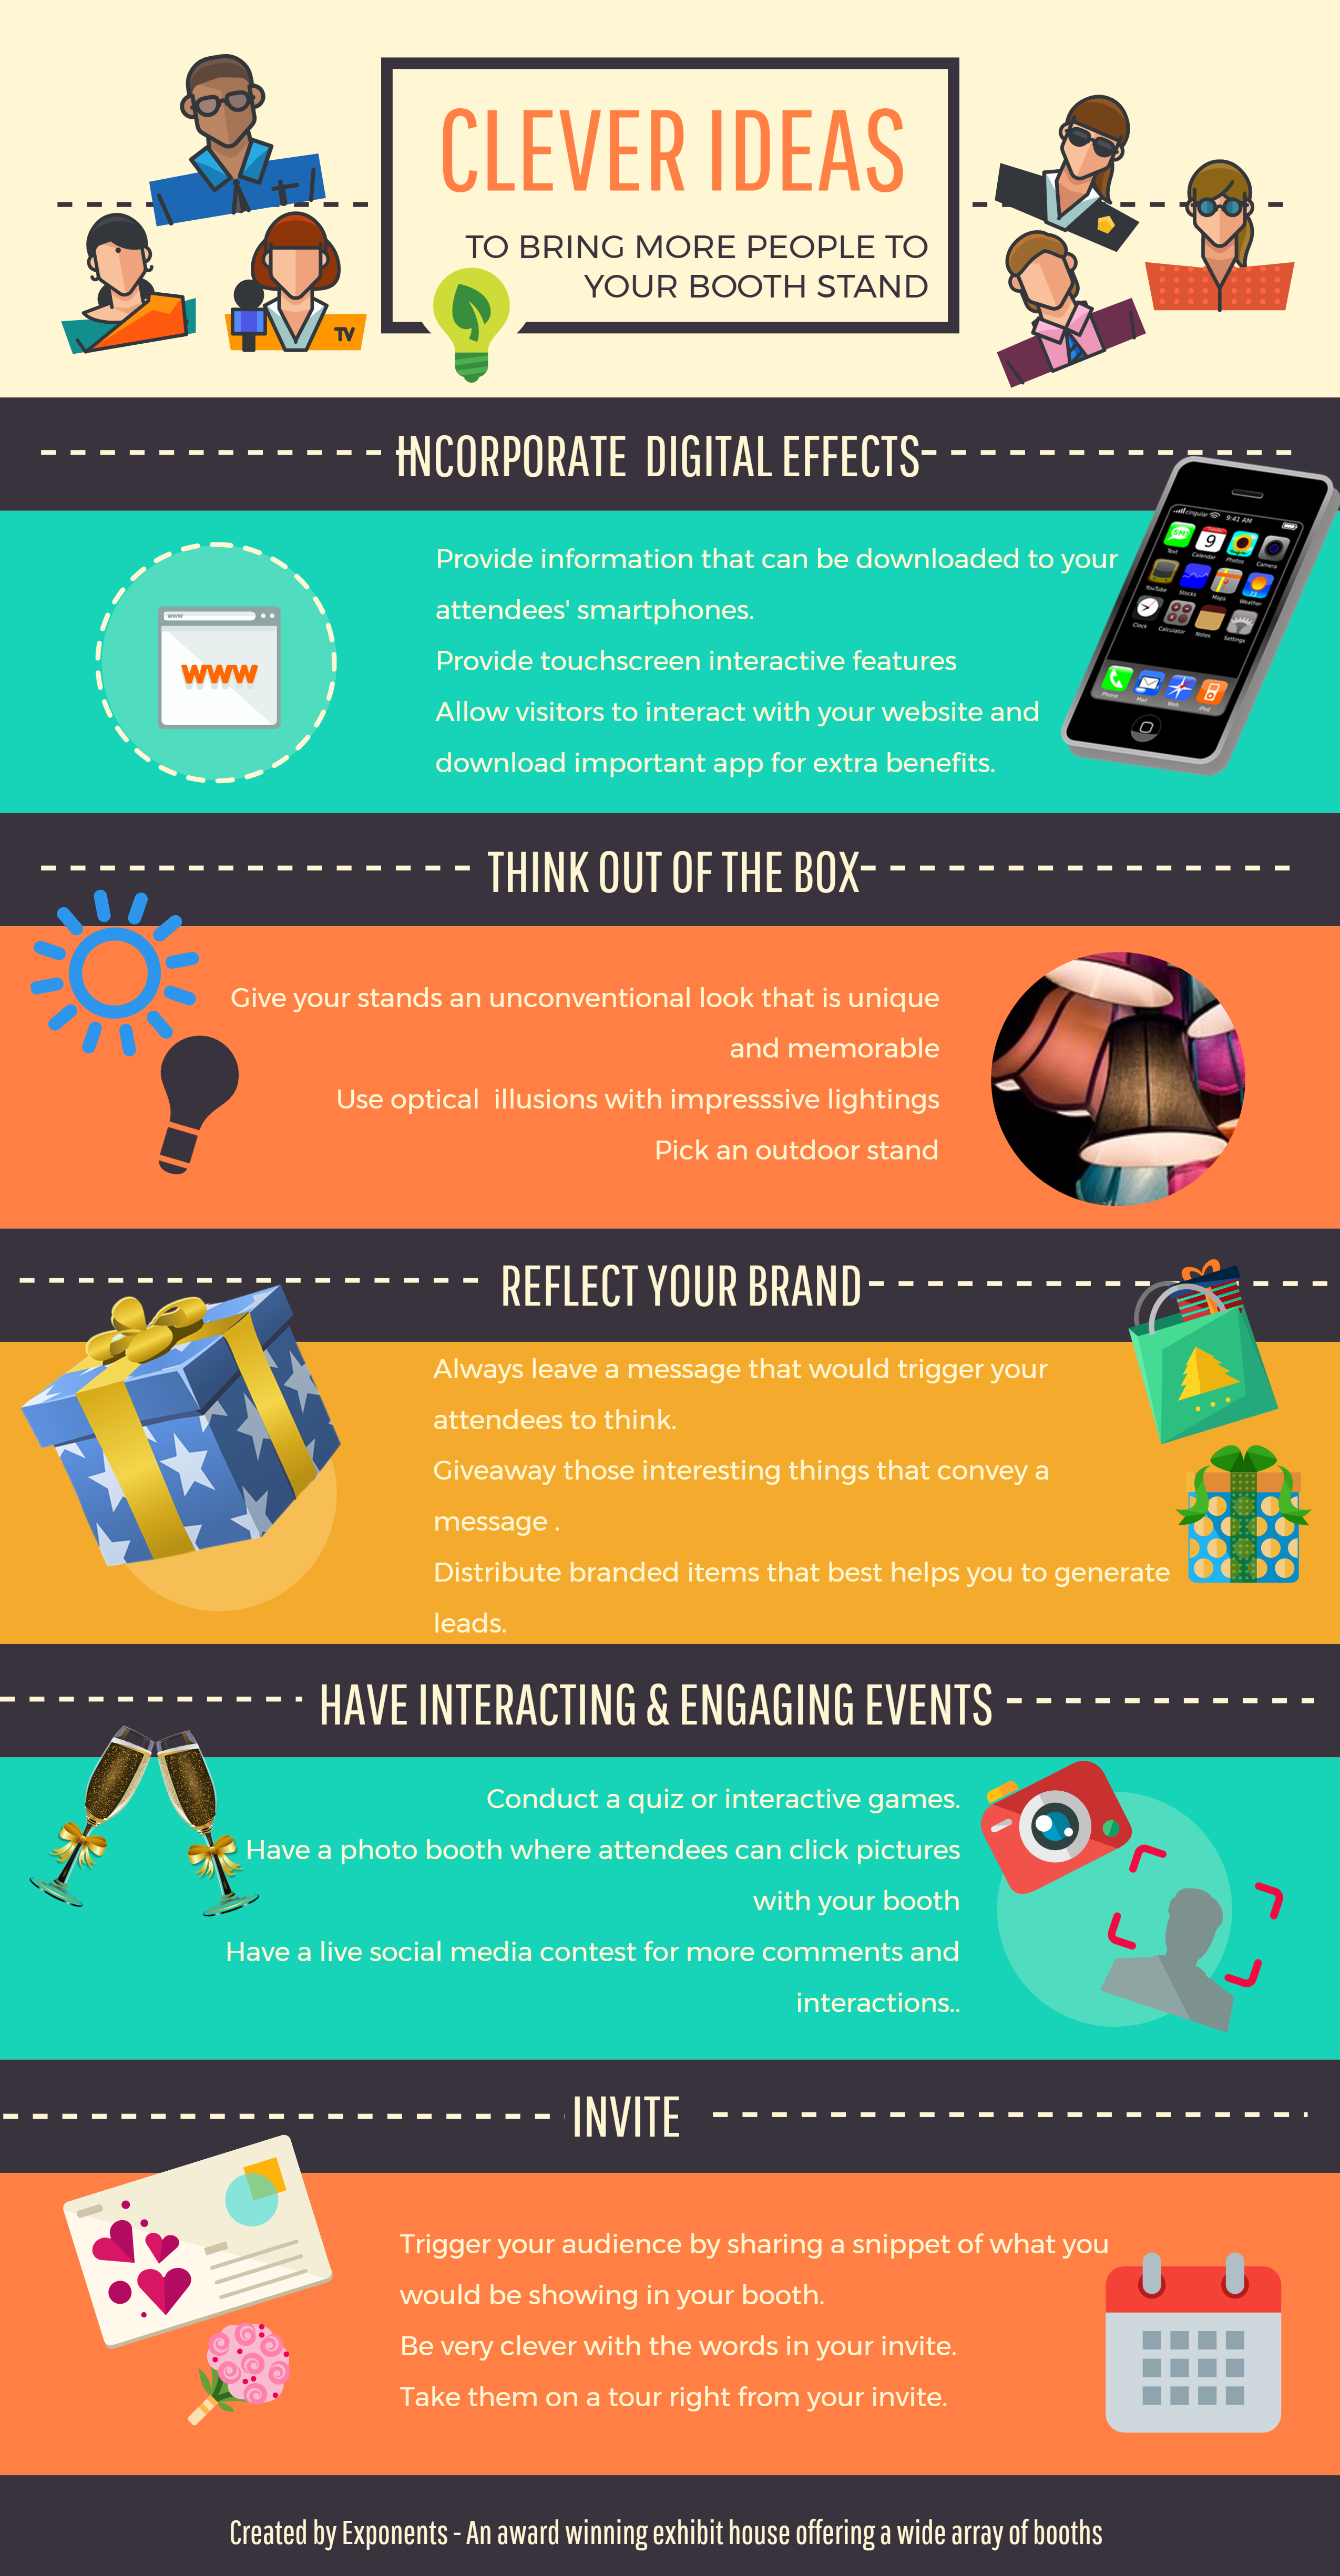 Exhibition Stand Checklist : Clever ideas to bring more people to your booth stand tradeshows